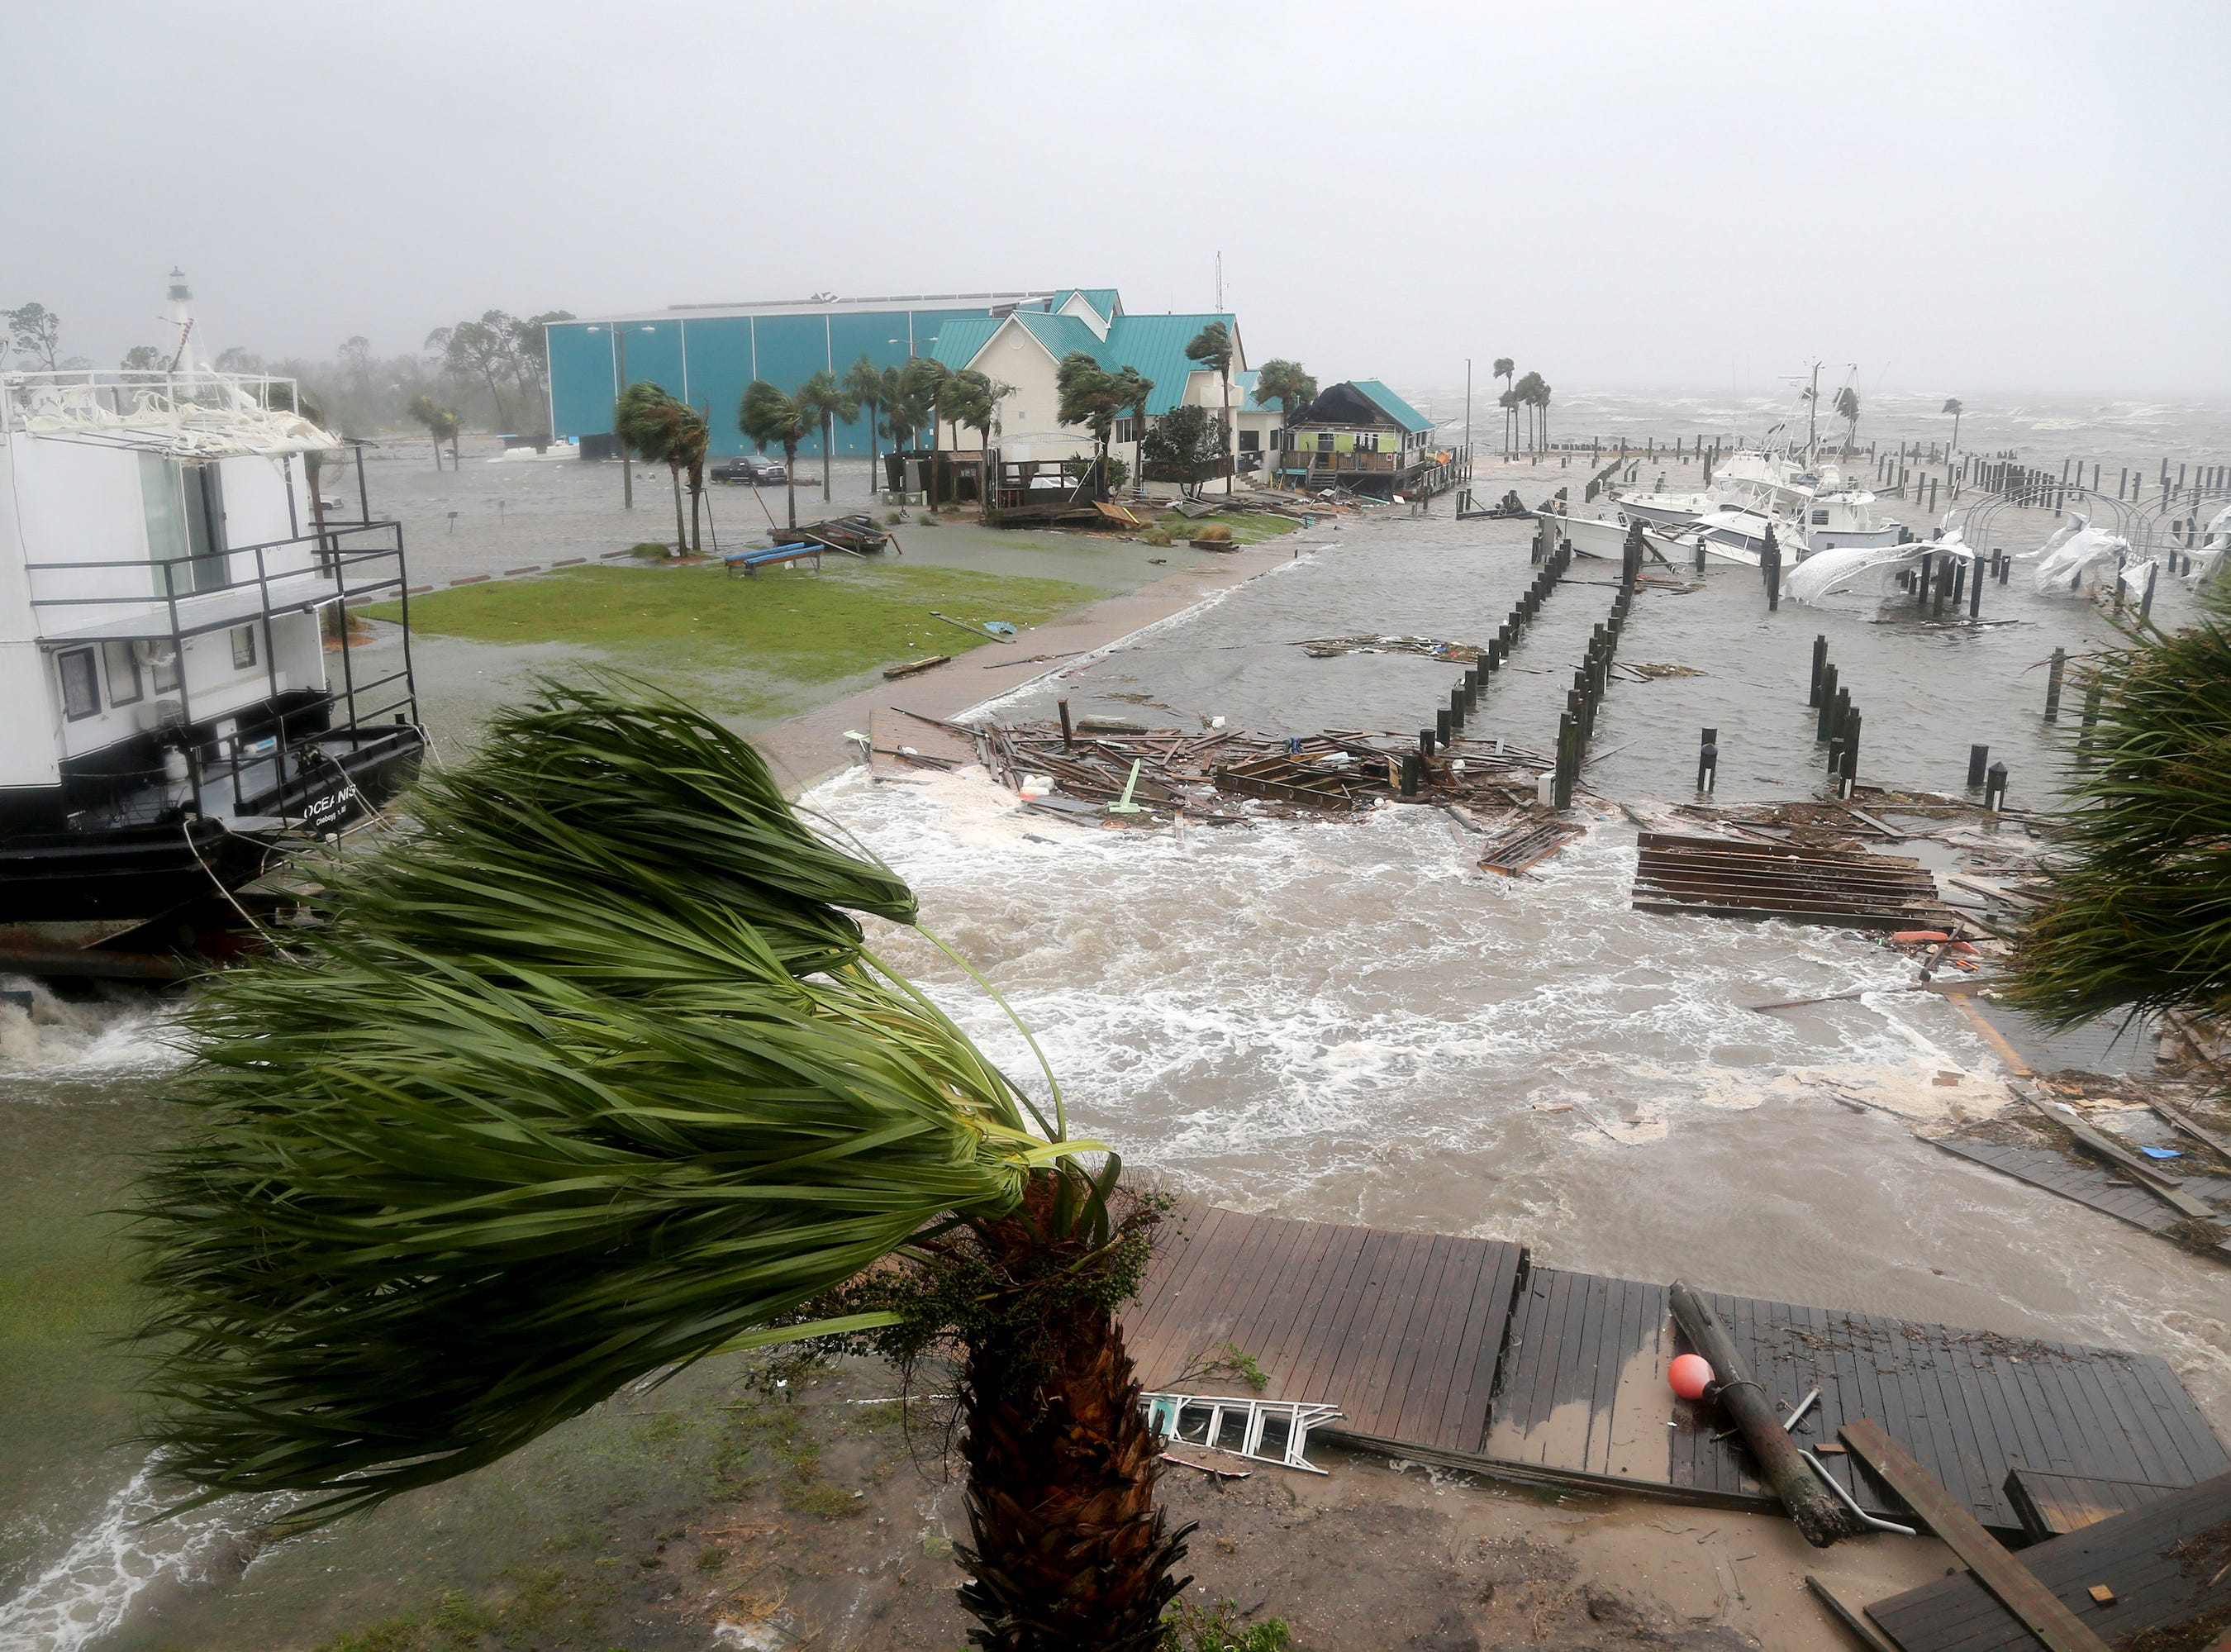 Boats lay sunk and damaged at the Port St. Joe Marina, Wednesday, Oct. 10, 2018 in Port St. Joe, Fla. Supercharged by abnormally warm waters in the Gulf of Mexico, Hurricane Michael slammed into the Florida Panhandle with terrifying winds of 155 mph Wednesday, splintering homes and submerging neighborhoods. (Douglas R. Clifford/Tampa Bay Times via AP)